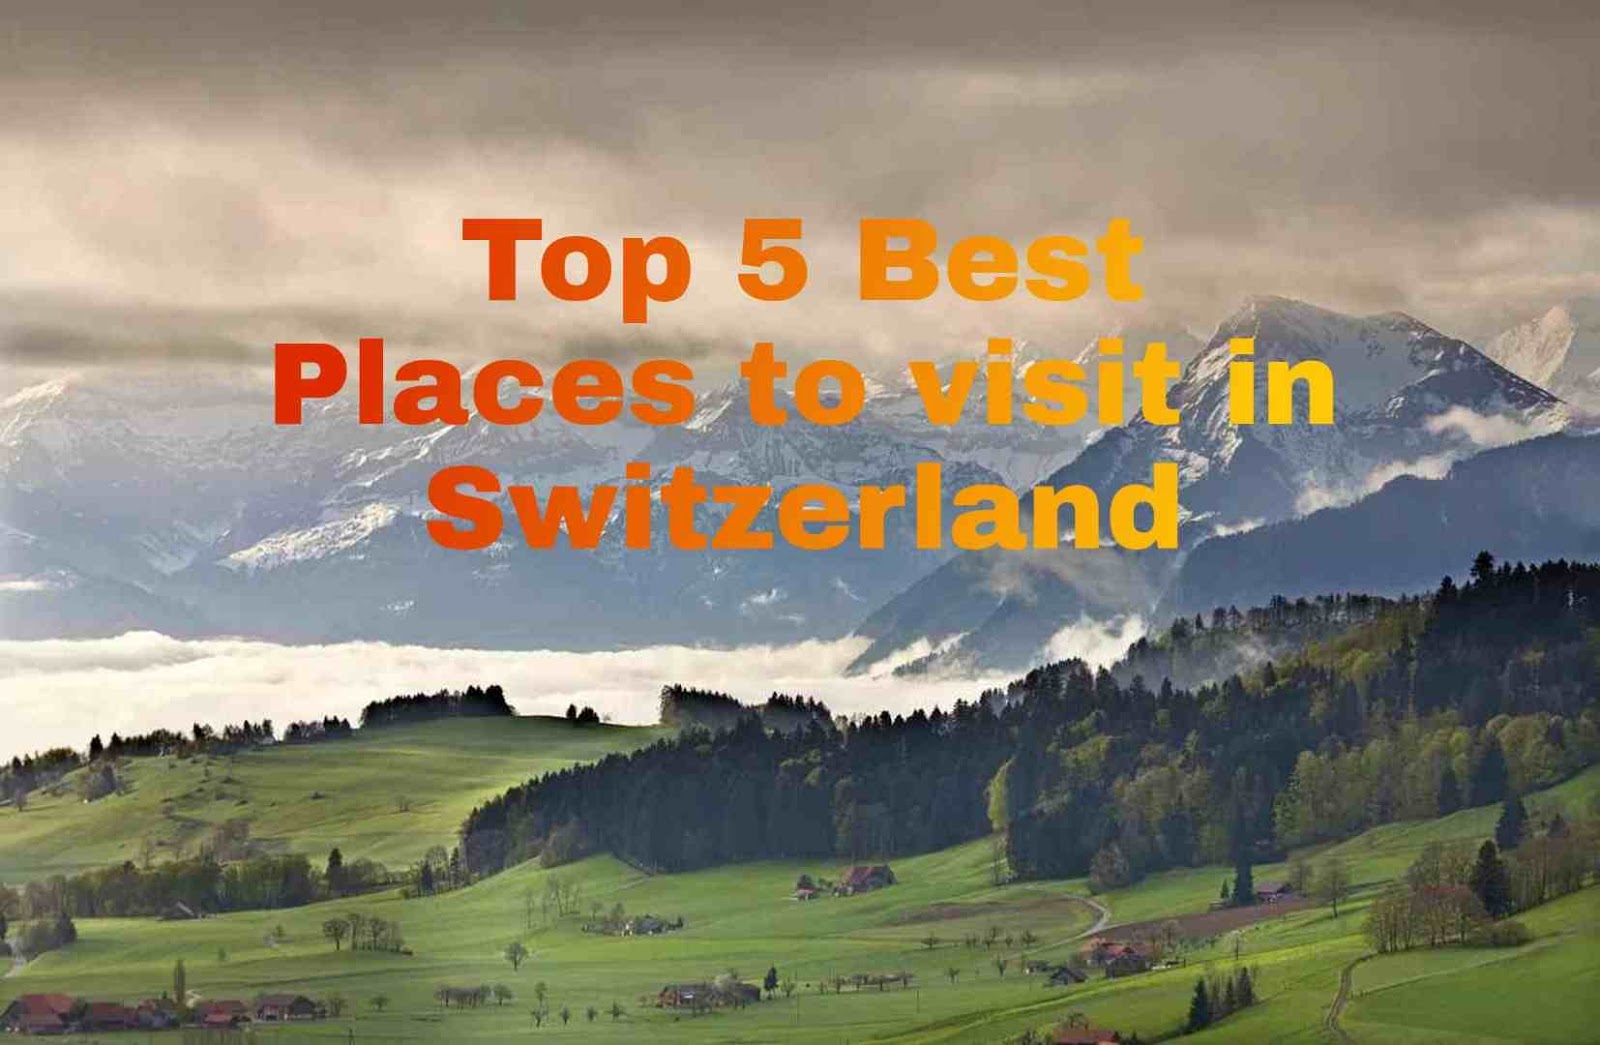 Top 5 Best Places to visit in Switzerland, Switzerland places to visit, Switzerland best time to visit